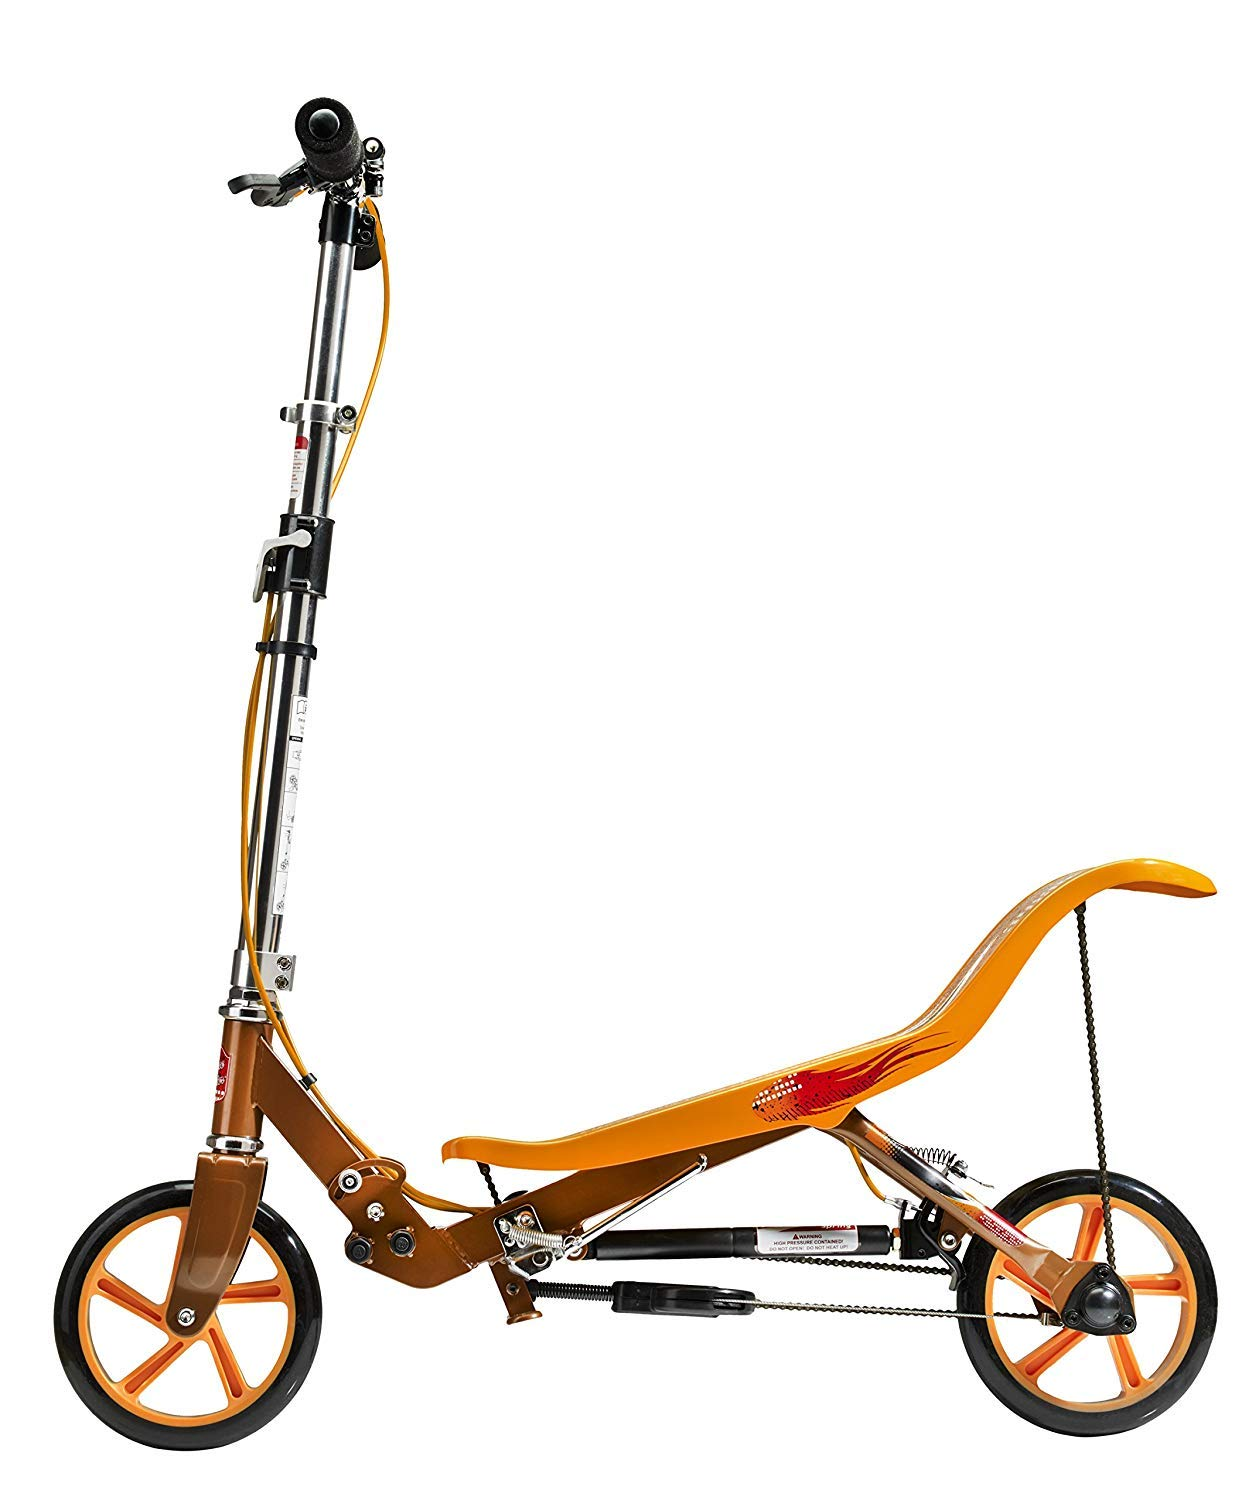 orange Space Scooter X580 Push Push Push Board Seesaw Kids Scooter with Brake, Air Suspension & Compact Fold – White 285a48